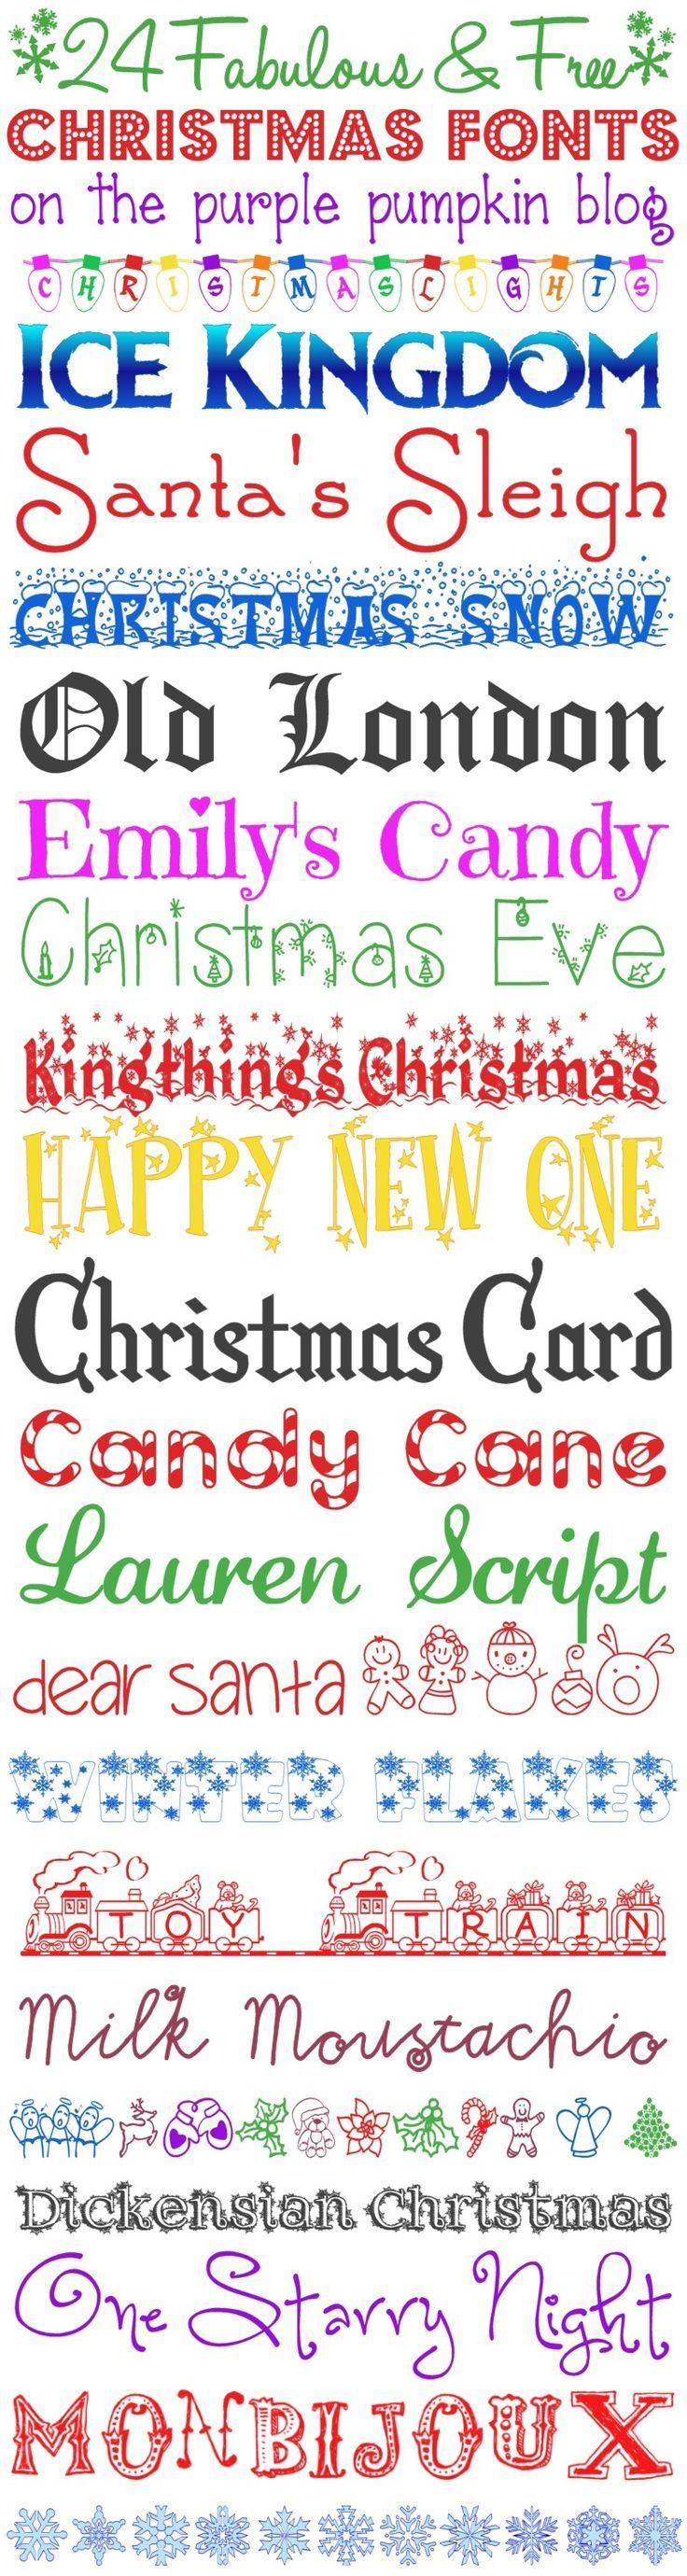 small resolution of 24 fabulous and free christmas fonts for all your christmas and festive projects